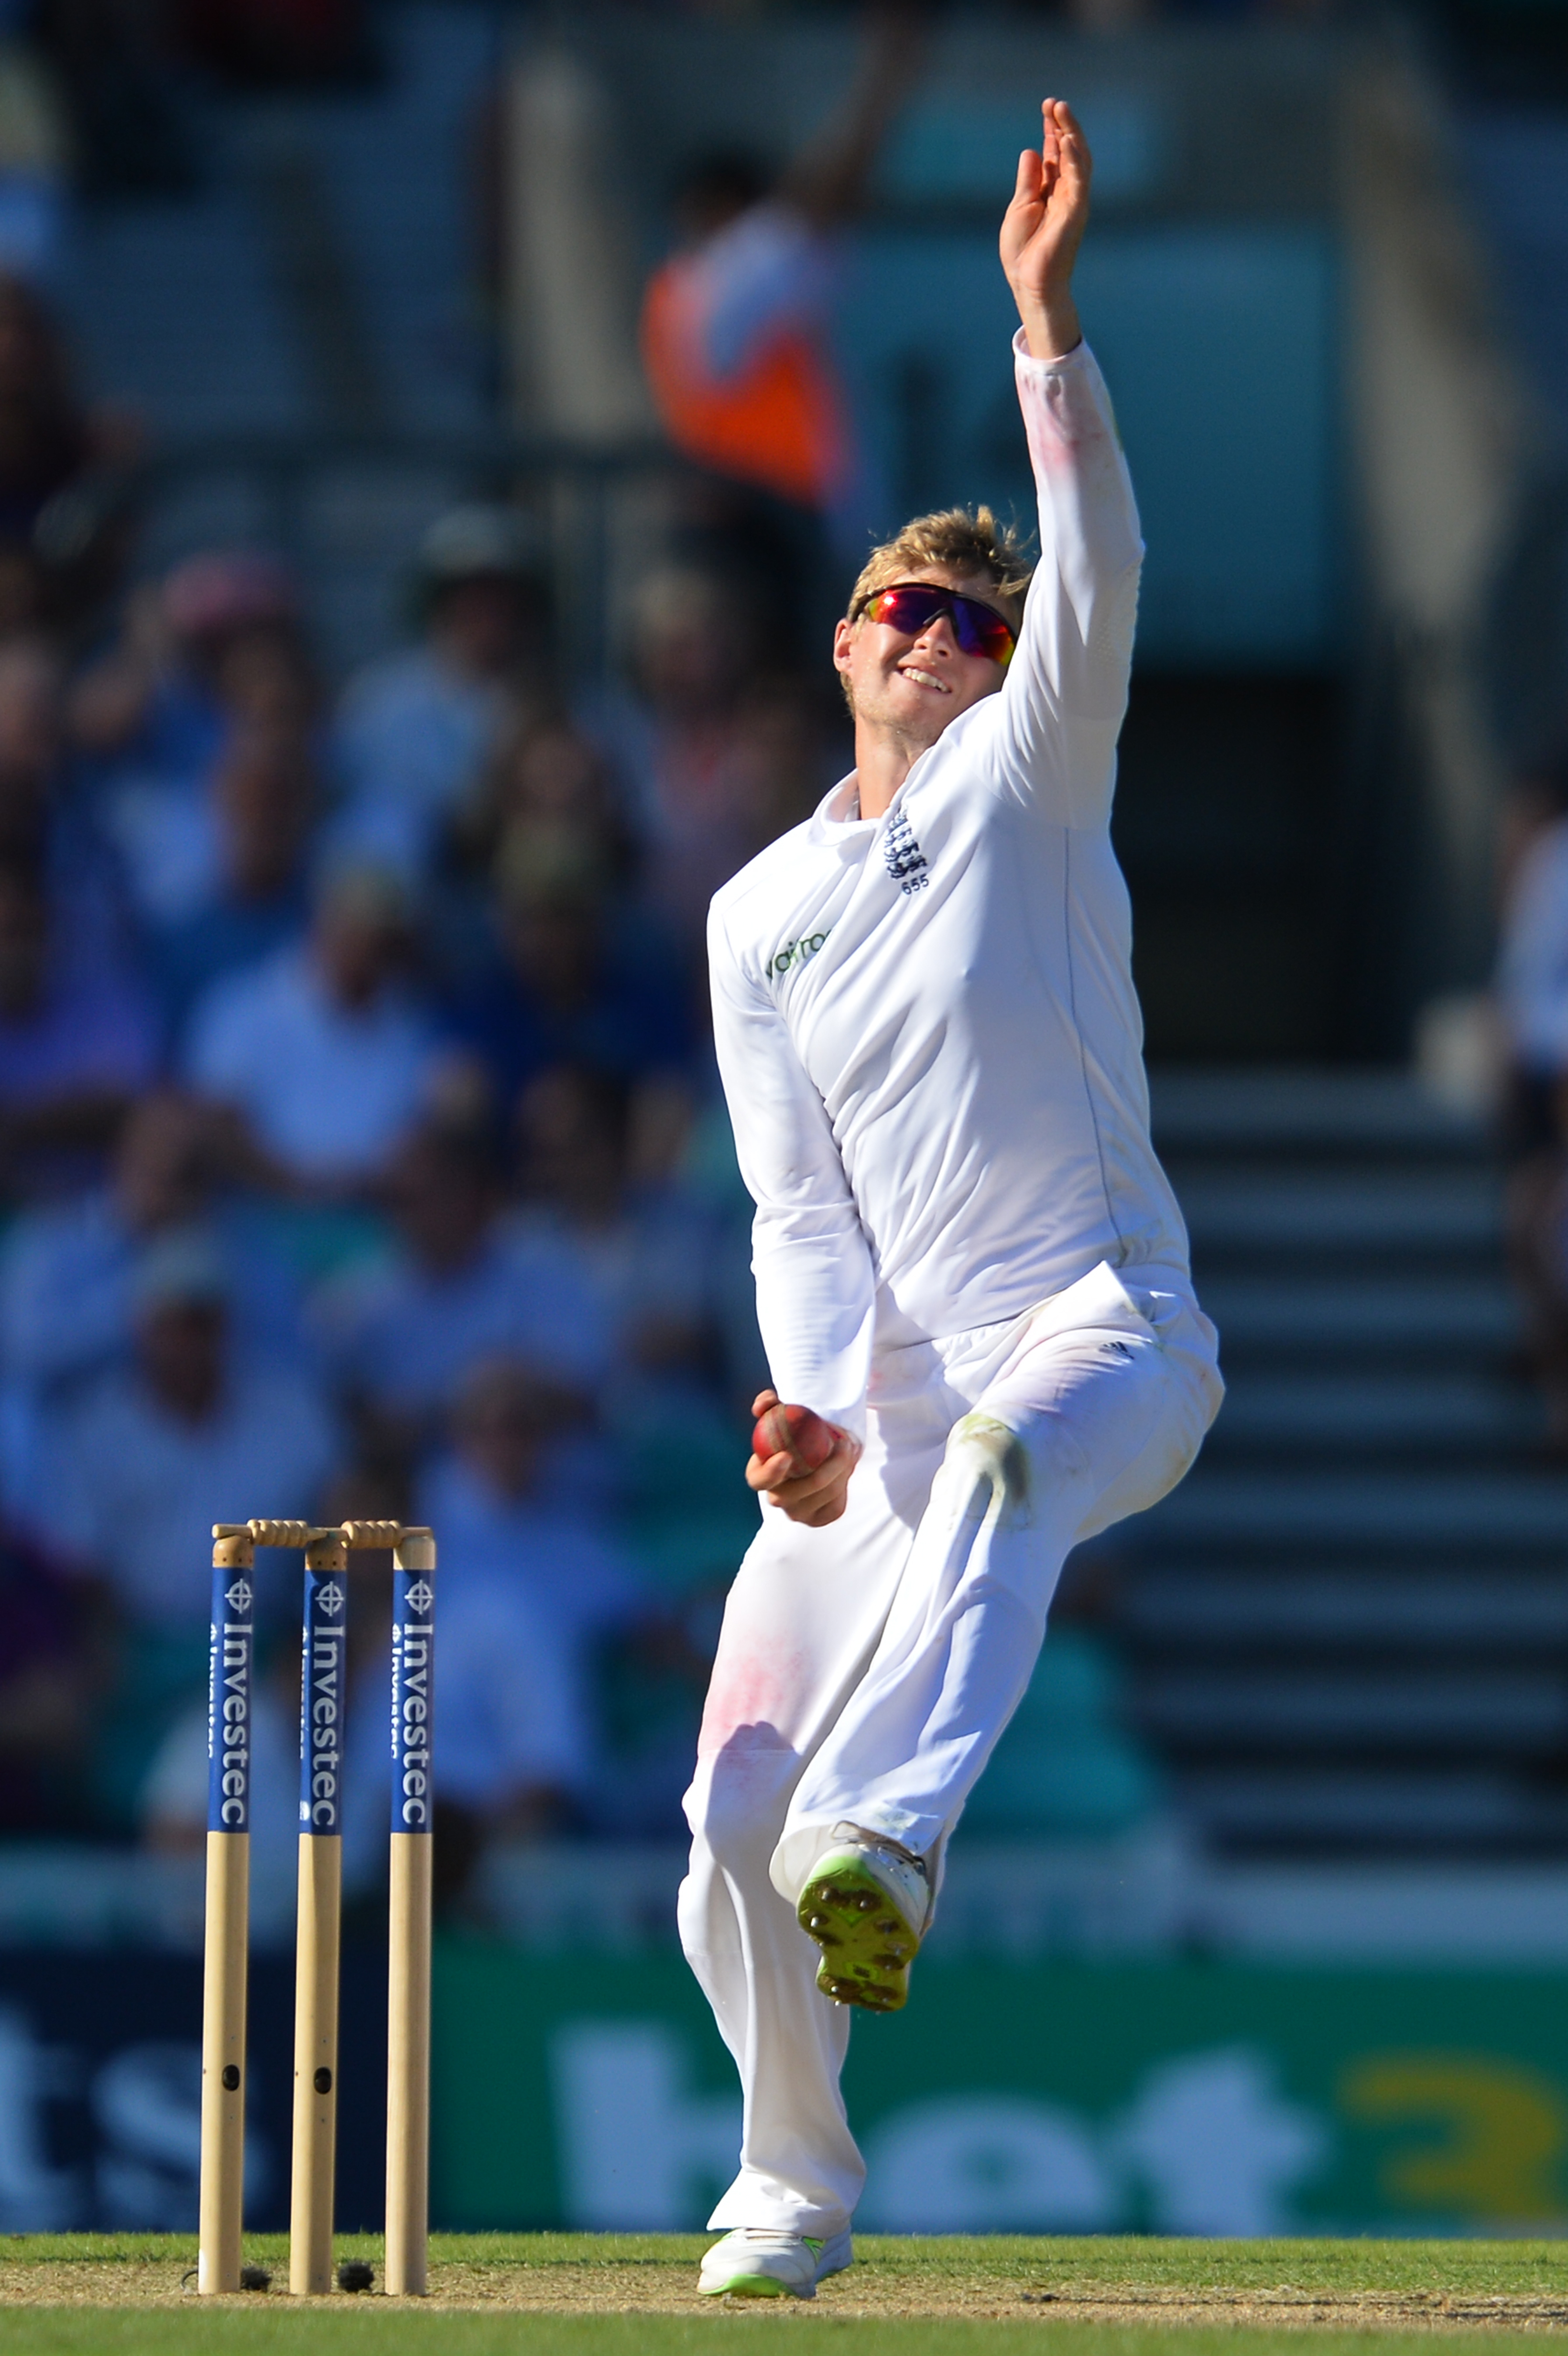 England's Joe Root bowls on the second day of the fourth test cricket match between England and Pakistan at the Oval in London on August 12, 2016.   / AFP PHOTO / GLYN KIRK / RESTRICTED TO EDITORIAL USE. NO ASSOCIATION WITH DIRECT COMPETITOR OF SPONSOR, PARTNER, OR SUPPLIER OF THE ECB